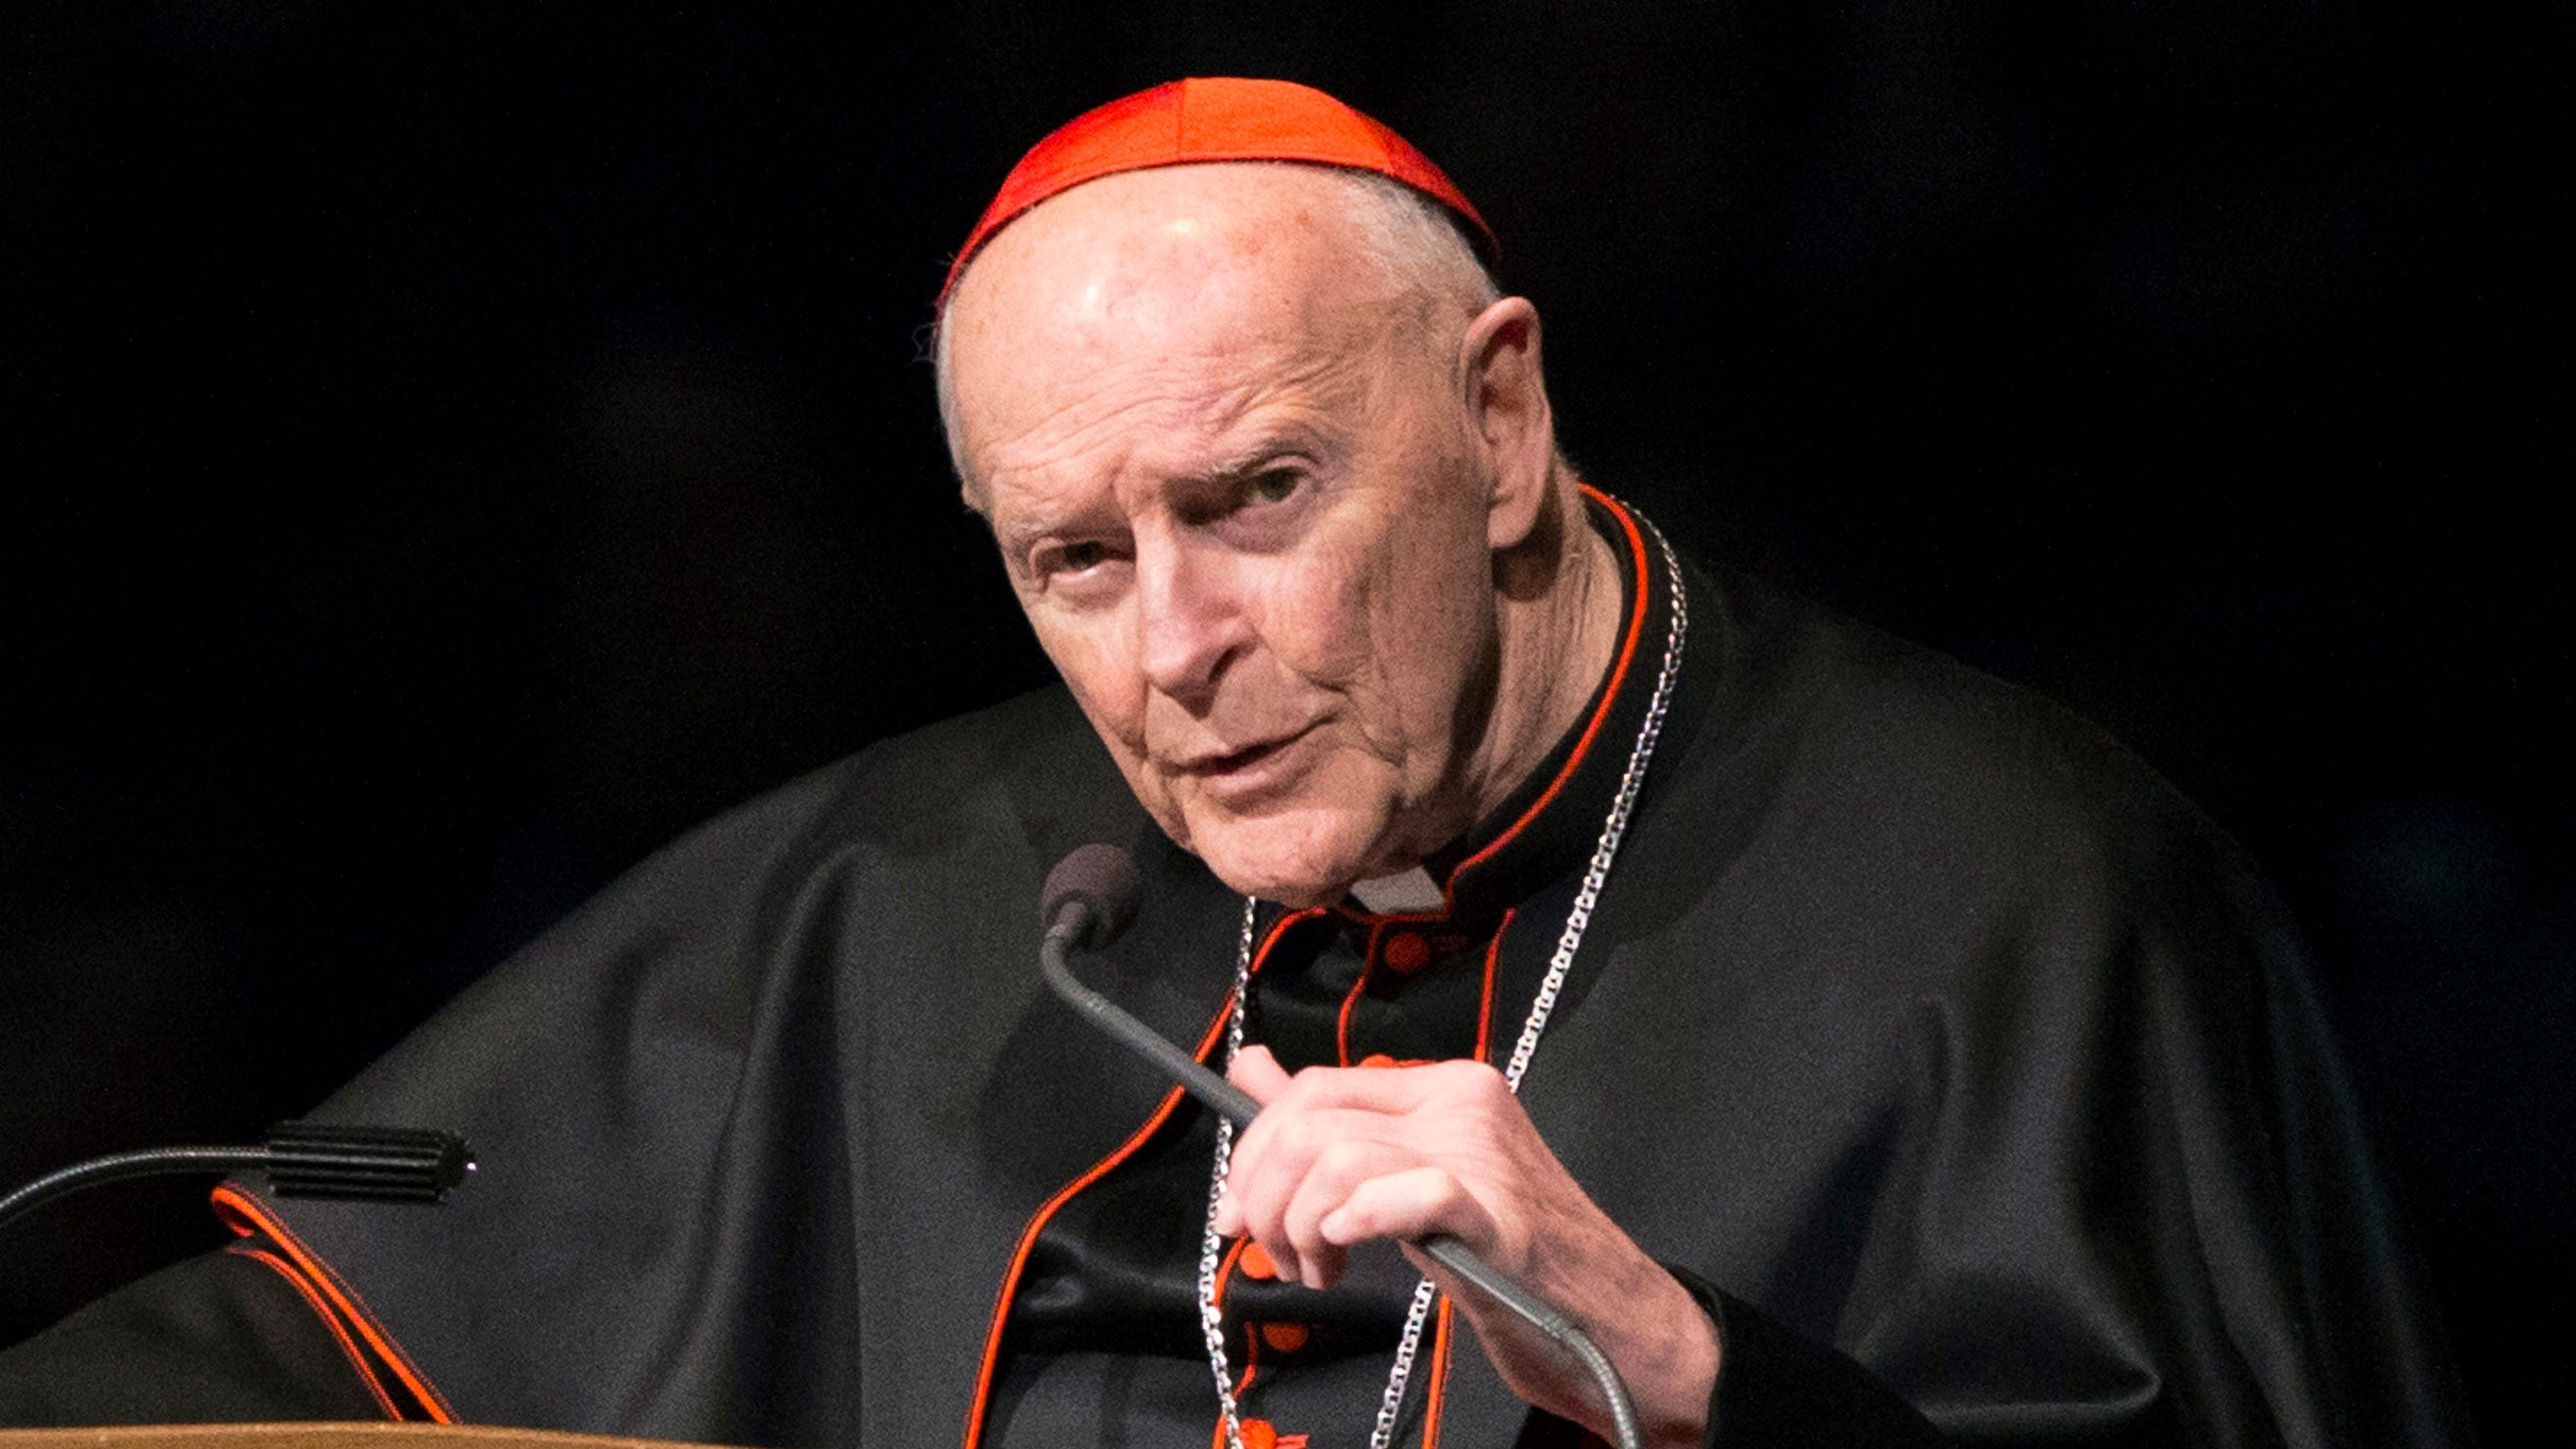 Former Cardinal Theodore McCarrick is pictured speaking during a memorial service in South Bend, Indiana.